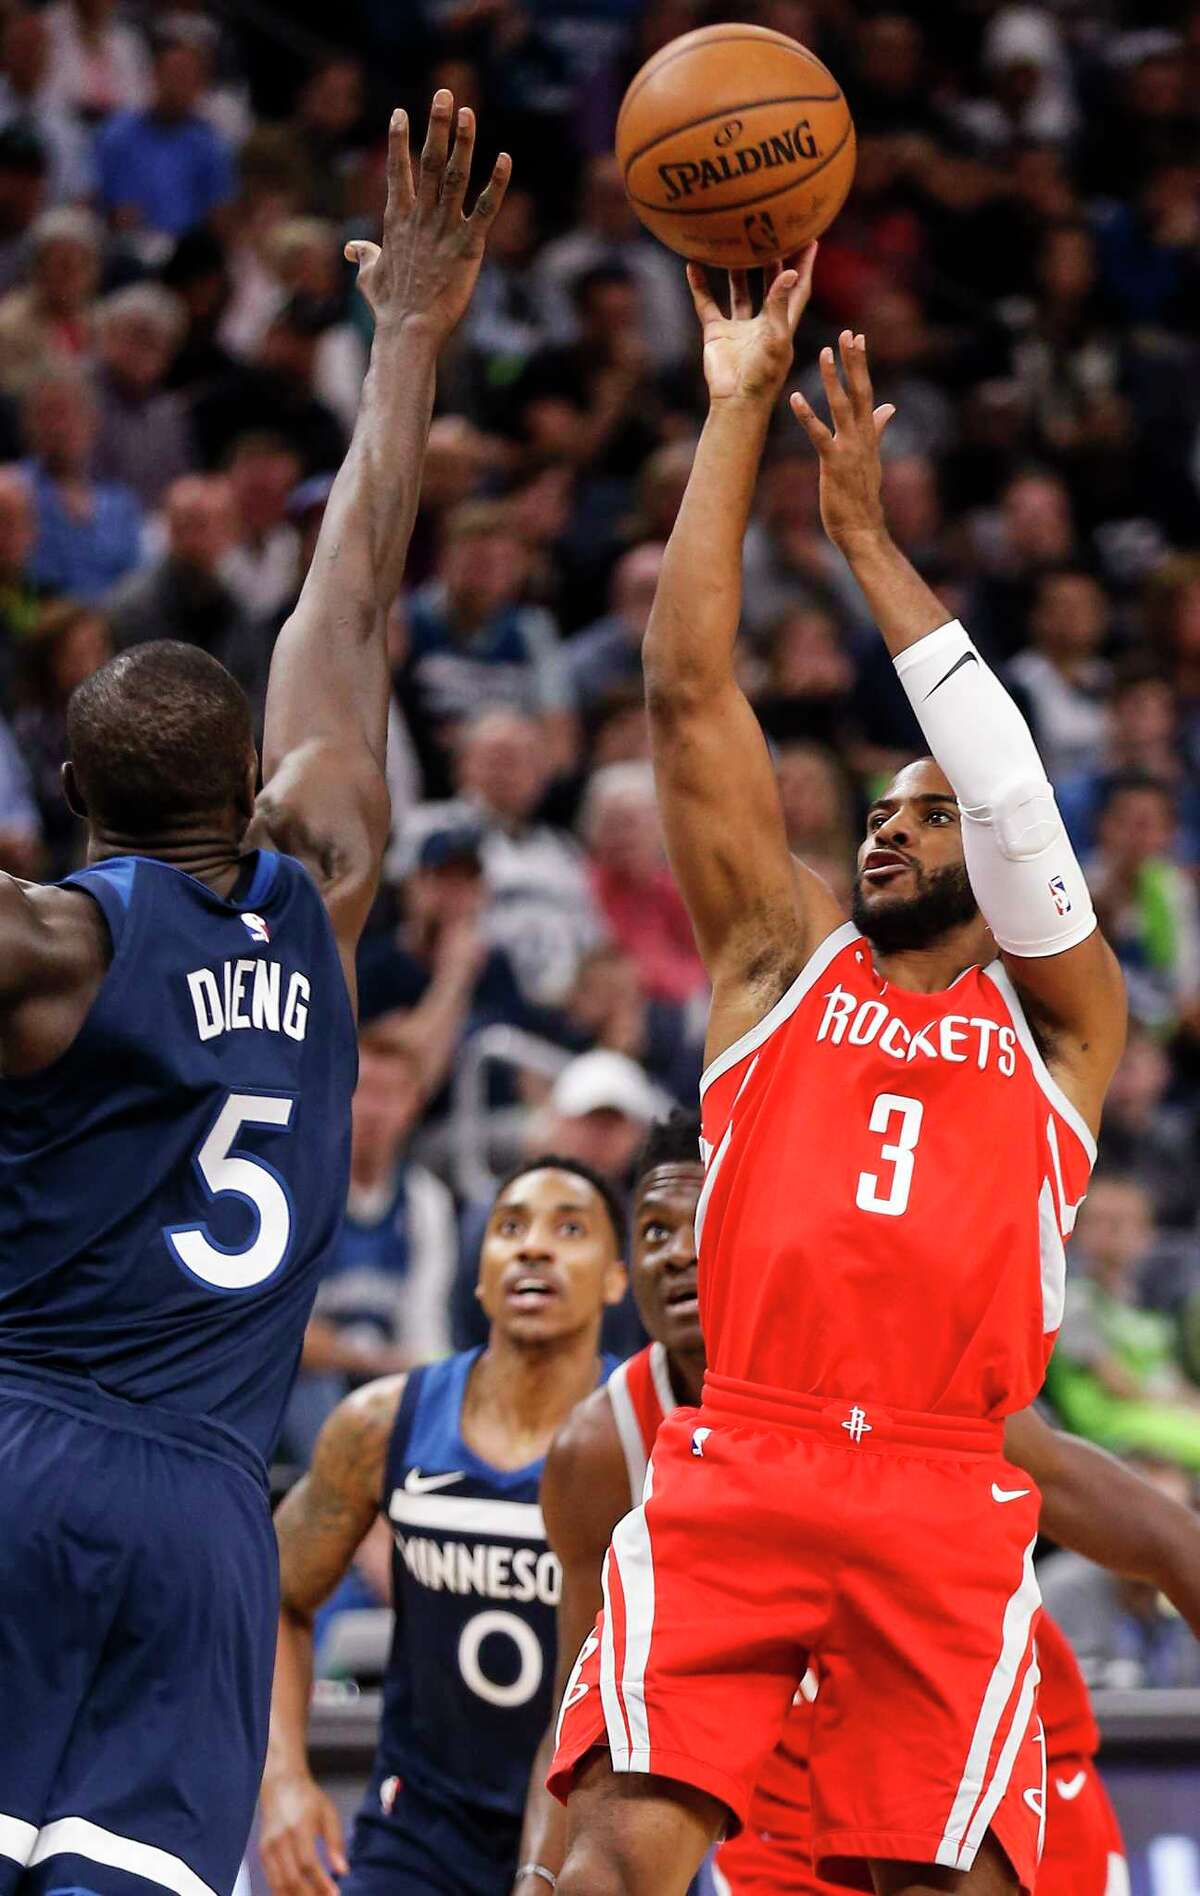 Houston Rockets guard Chris Paul (3) taks a shot against Minnesota Timberwolves center Gorgui Dieng (5) during the first half of Game 4 of the first round of the NBA Playoffs at Target Center Monday, April 23, 2018 in Minneapolis.